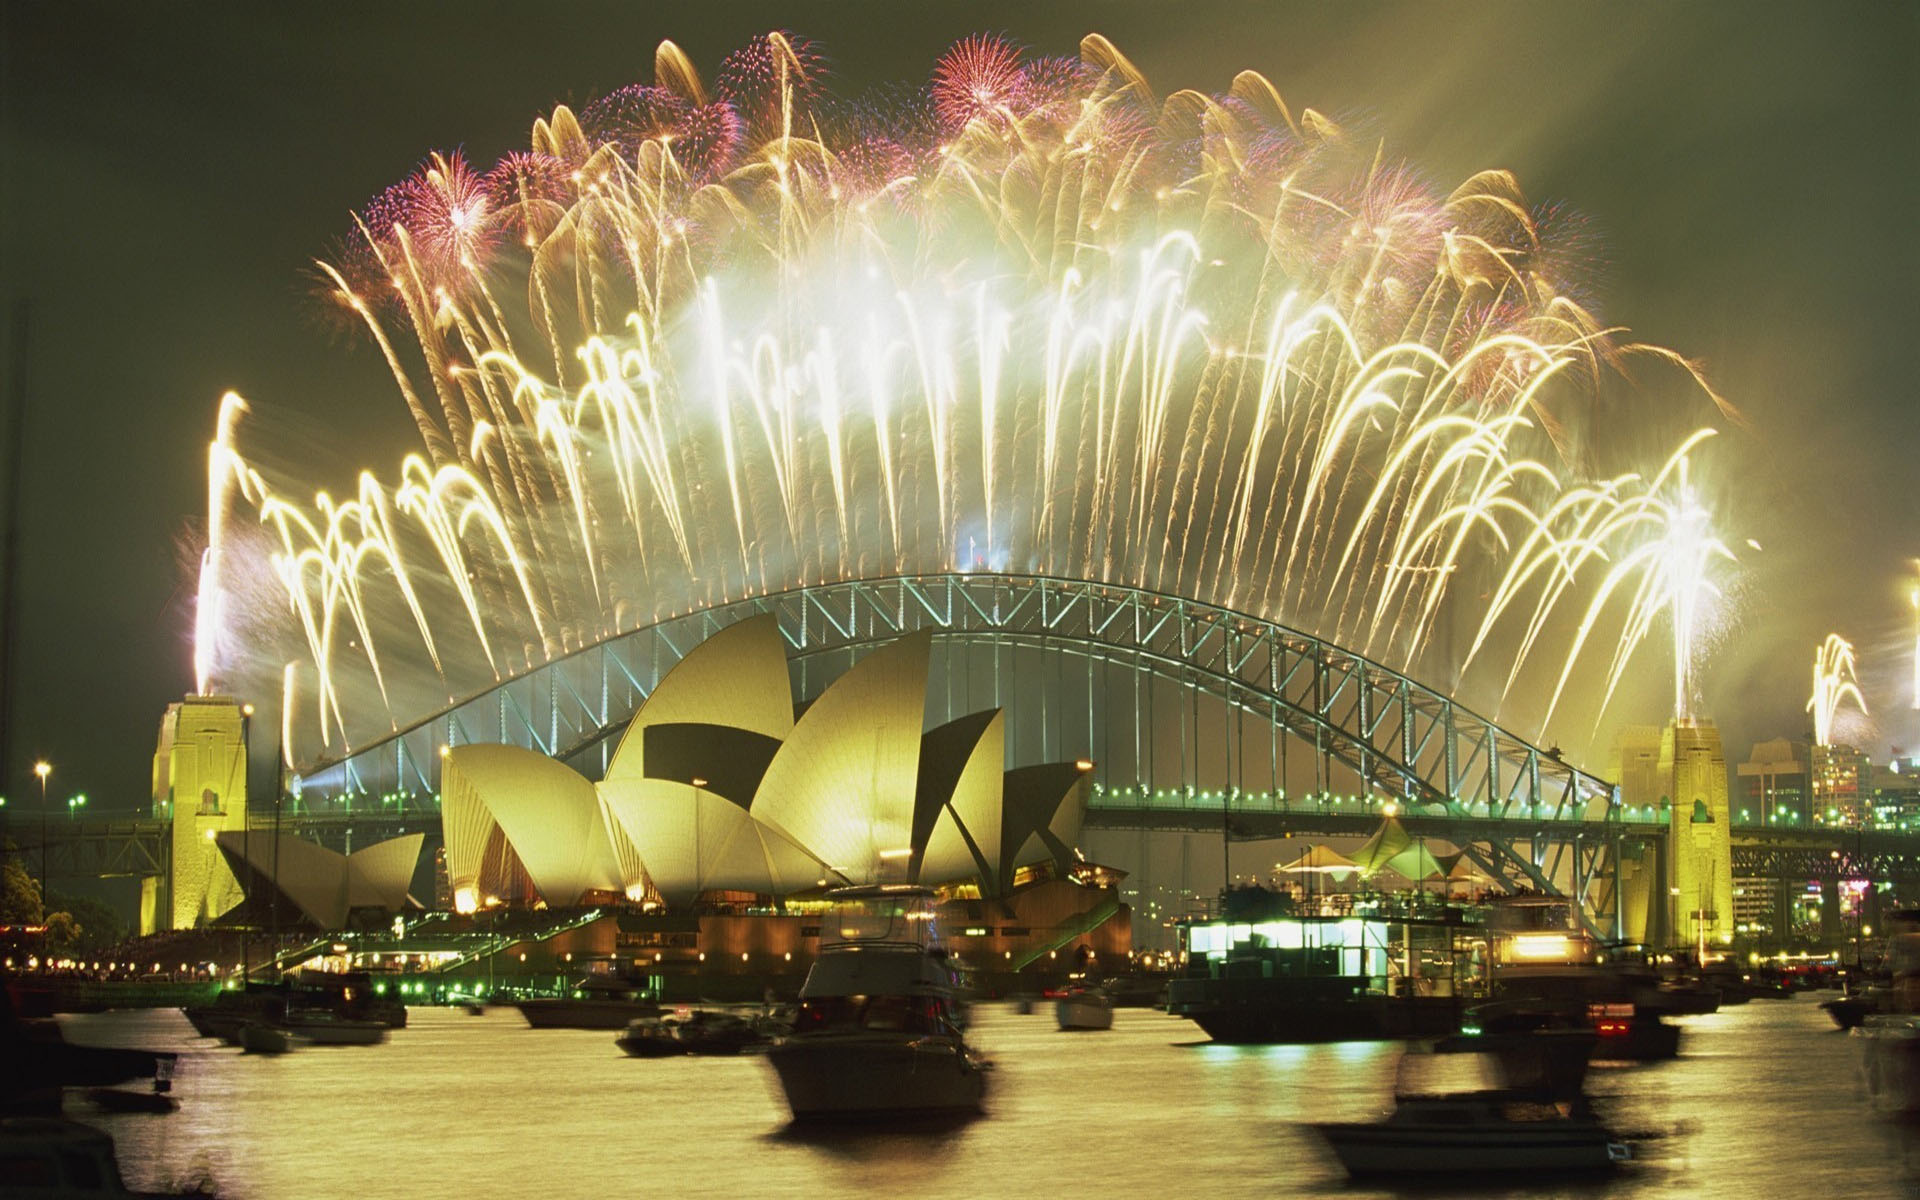 Sydney fireworks at the Harbourd Bridge in the New Year's Eve